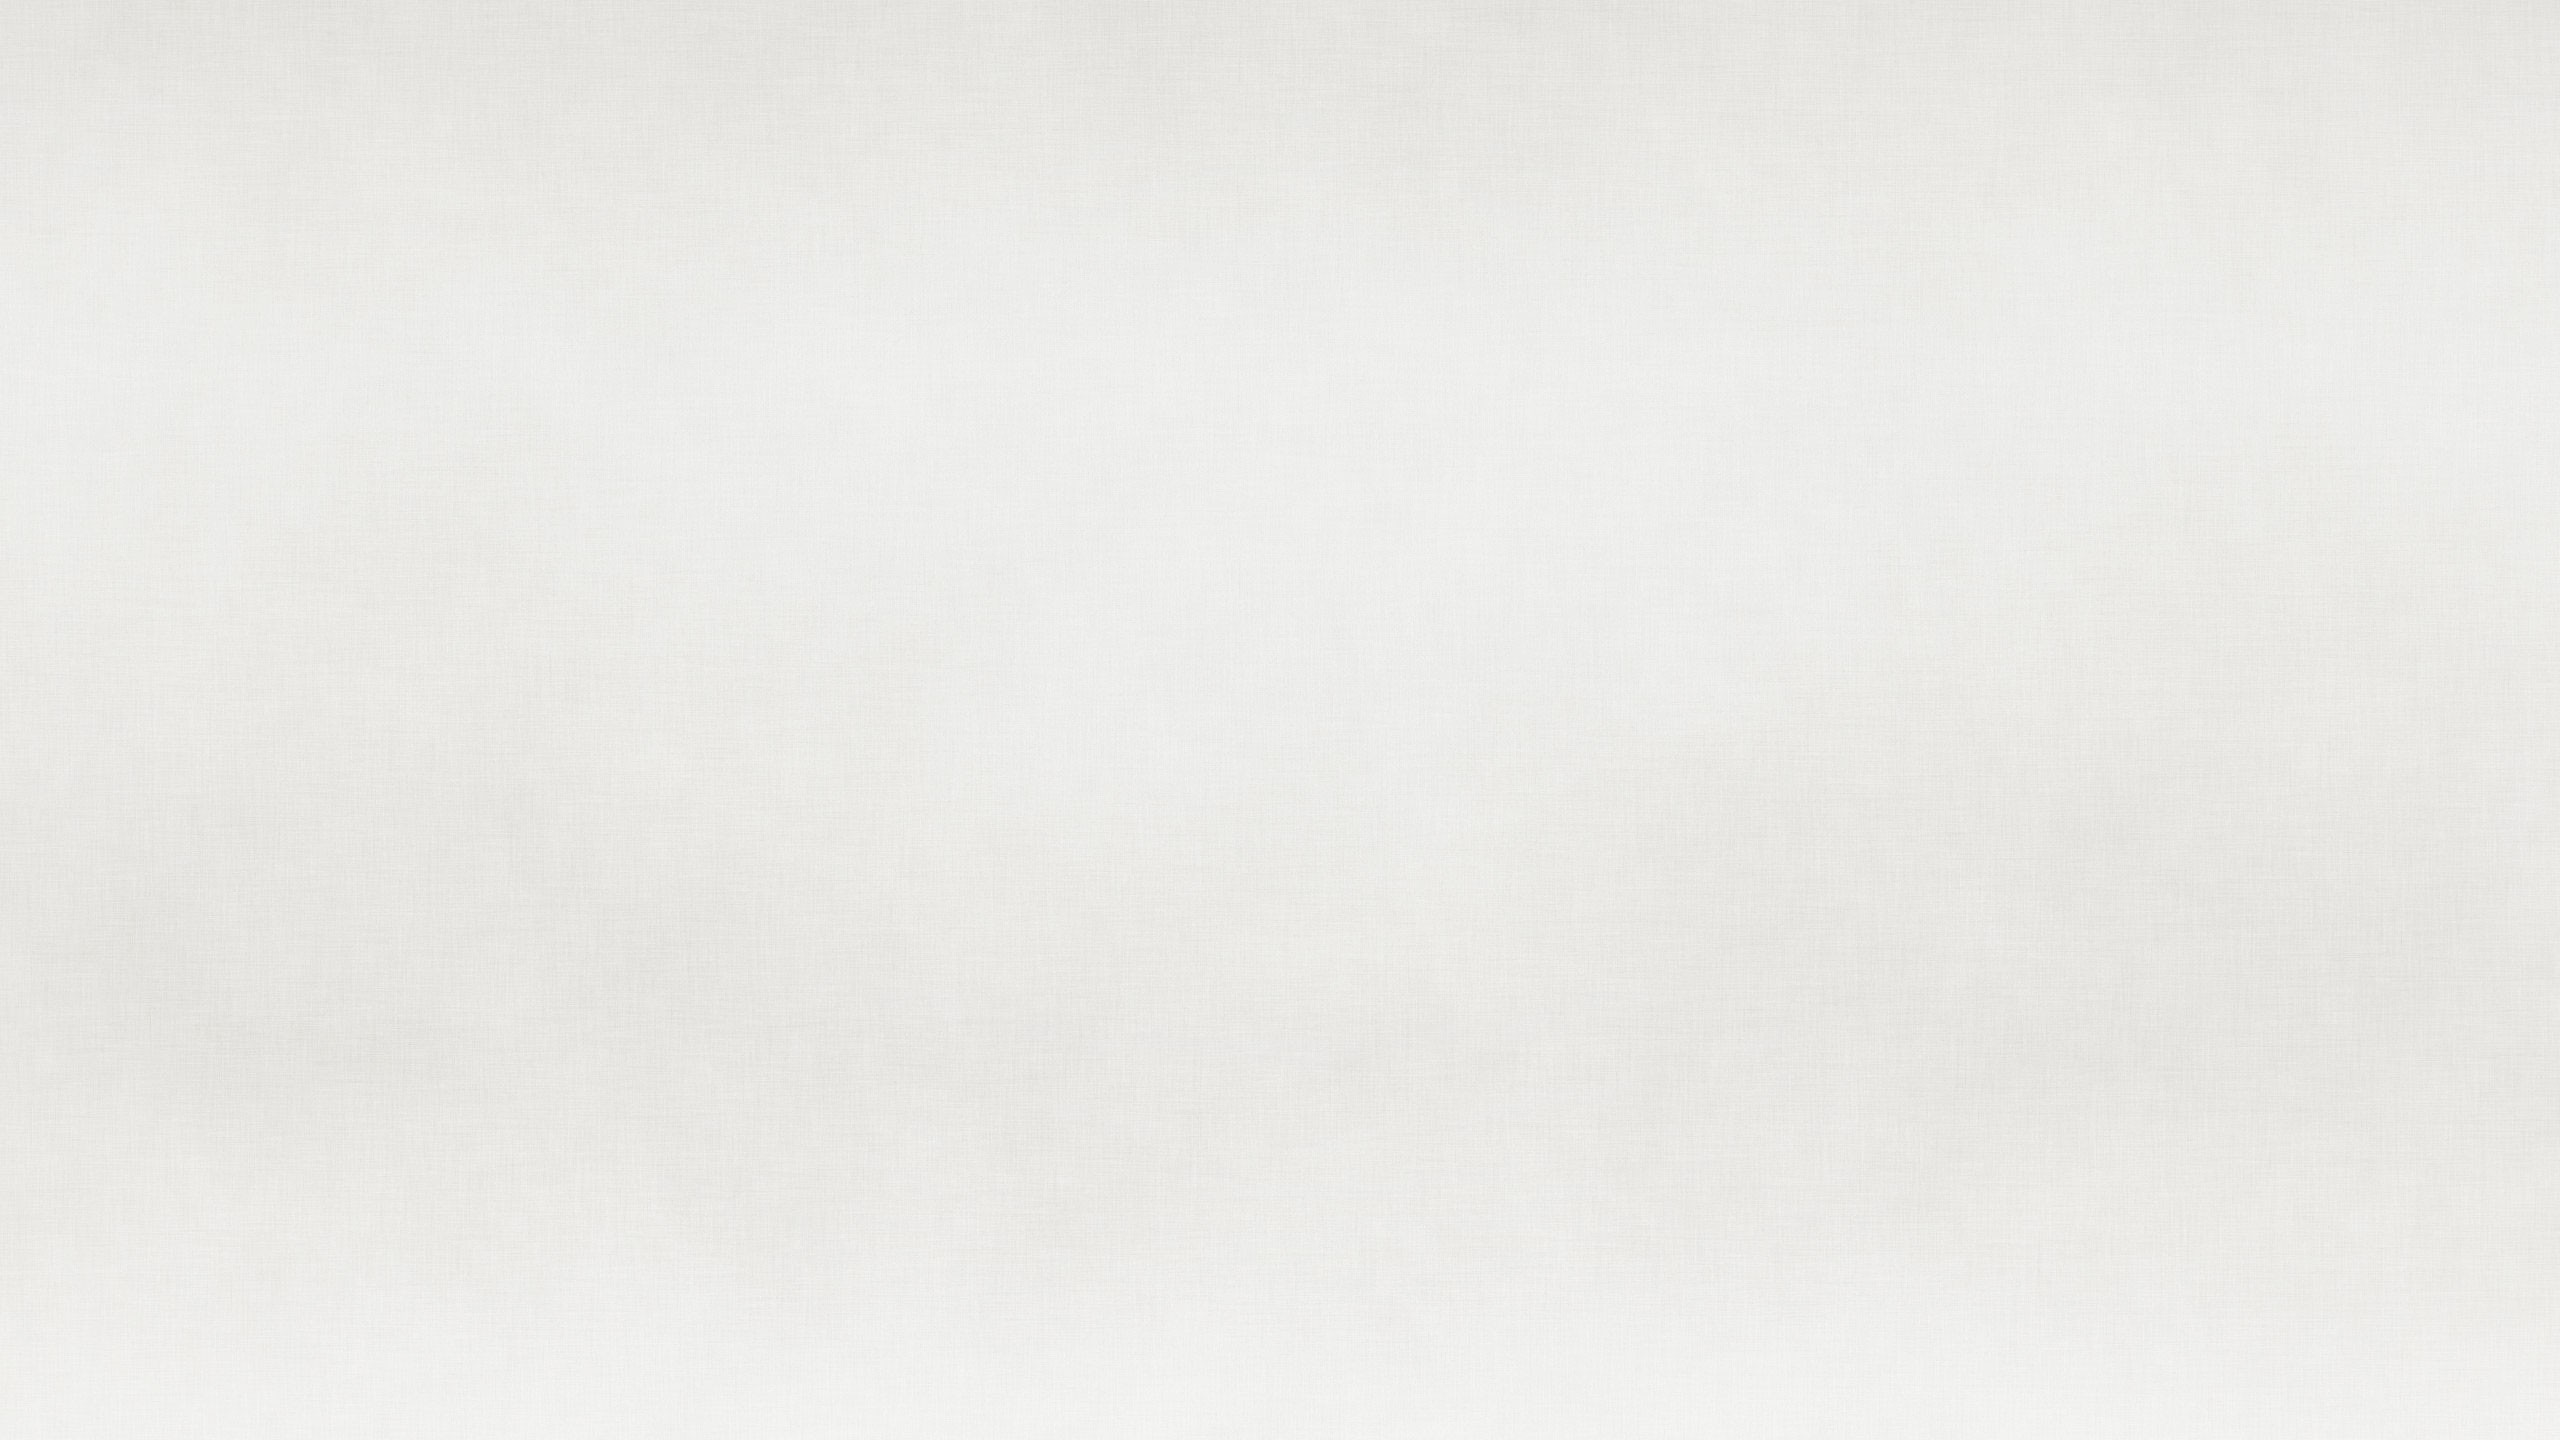 White gradient background download free beautiful - White background wallpaper ...